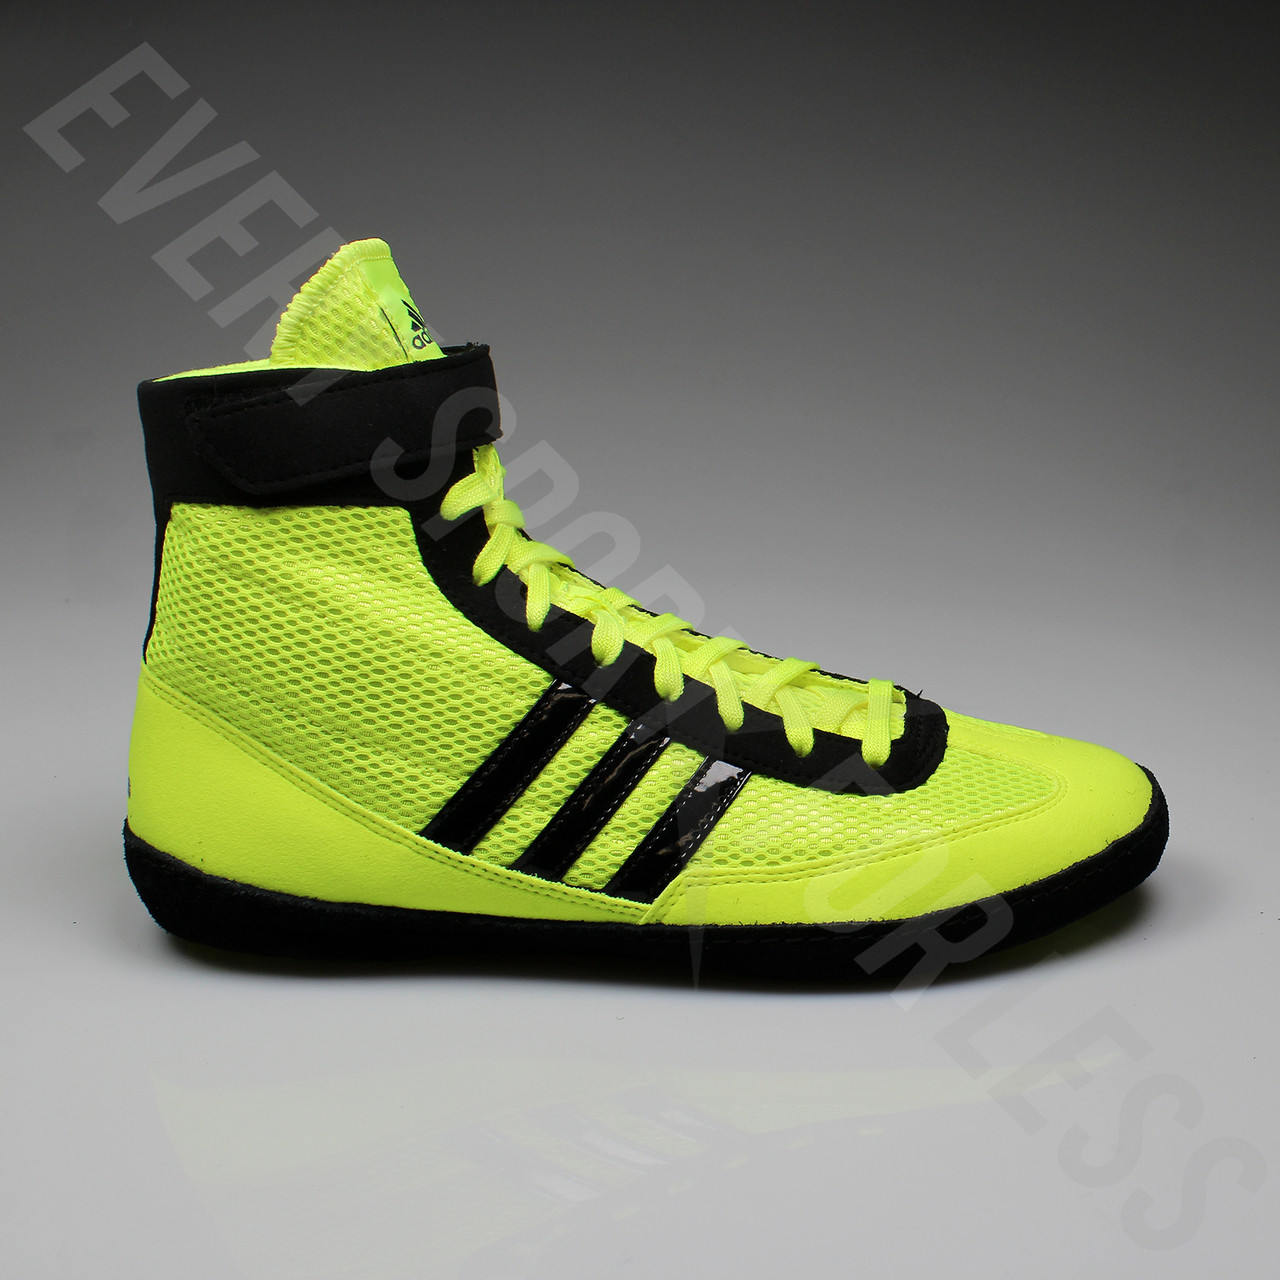 ... Adidas Combat Speed 4 Senior Wrestling Shoes S77933 - Yellow 52616b15a